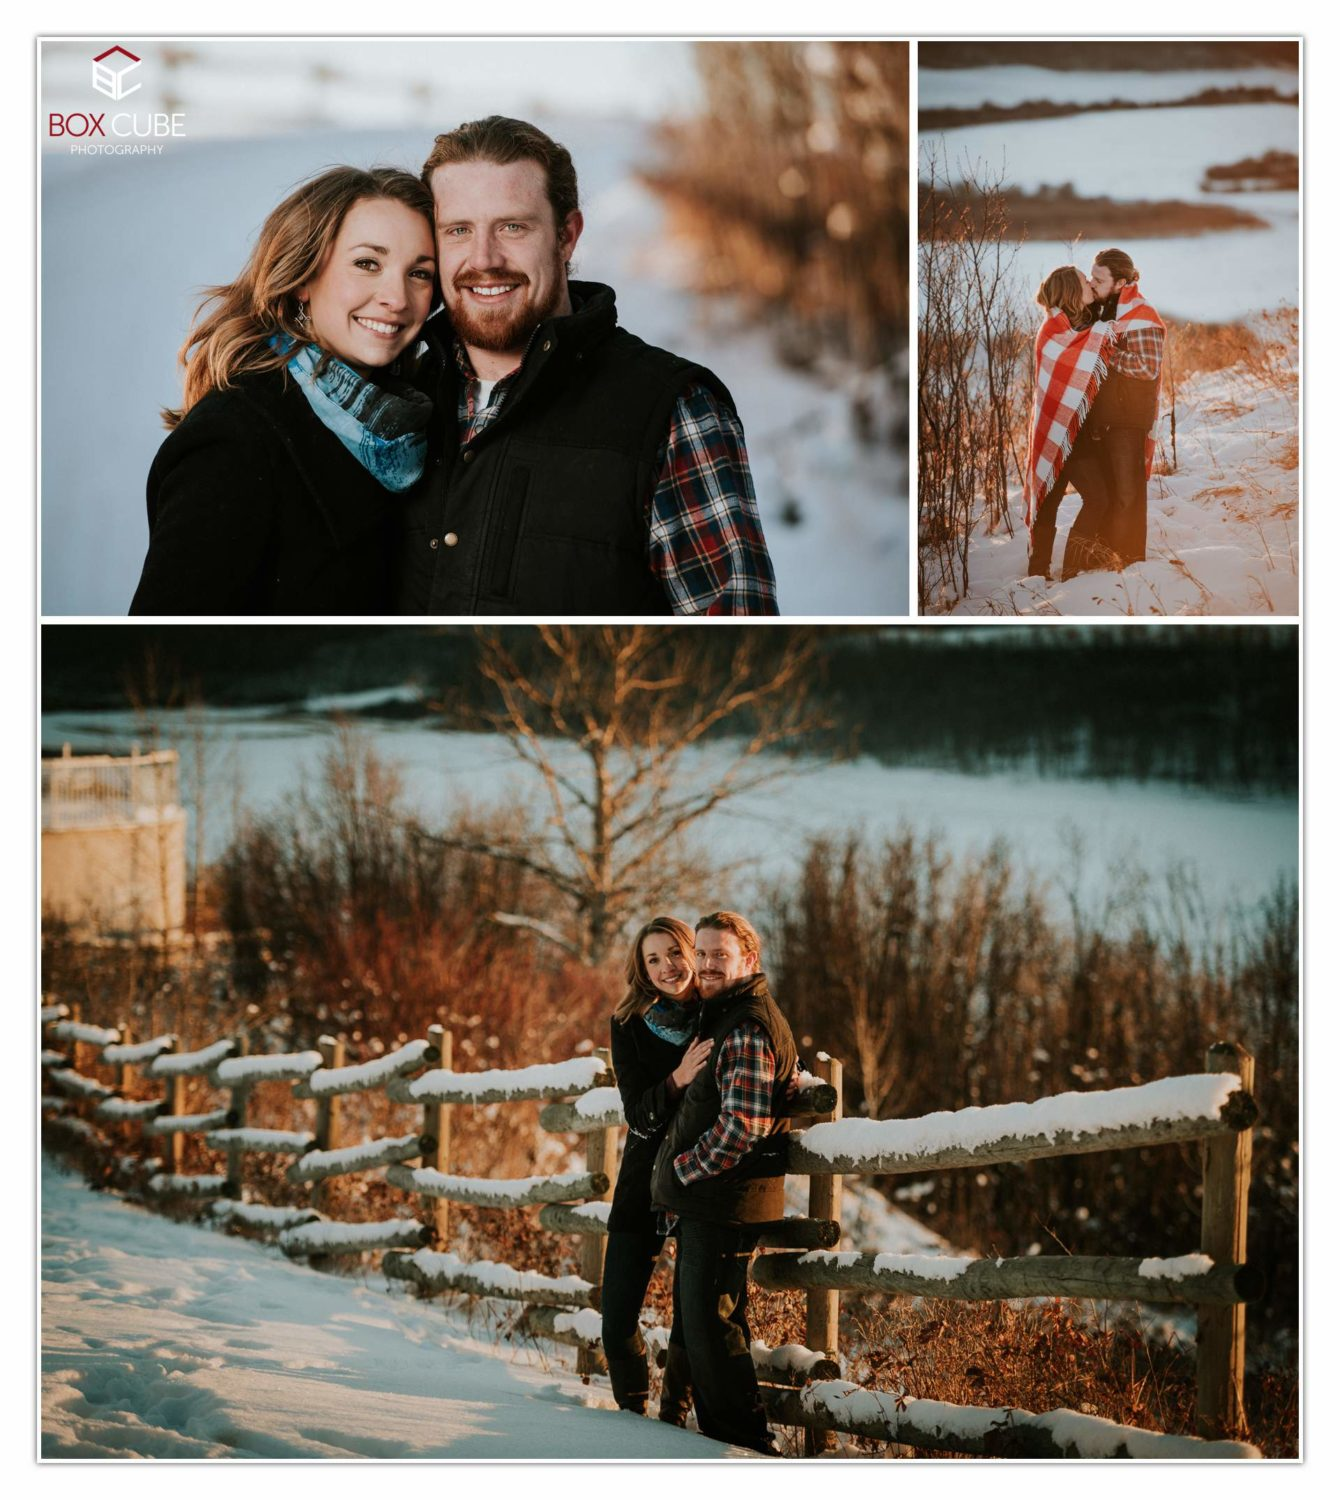 edmonton-wedding-photographer-box-cube-photography-nikola-scott-engagement 7